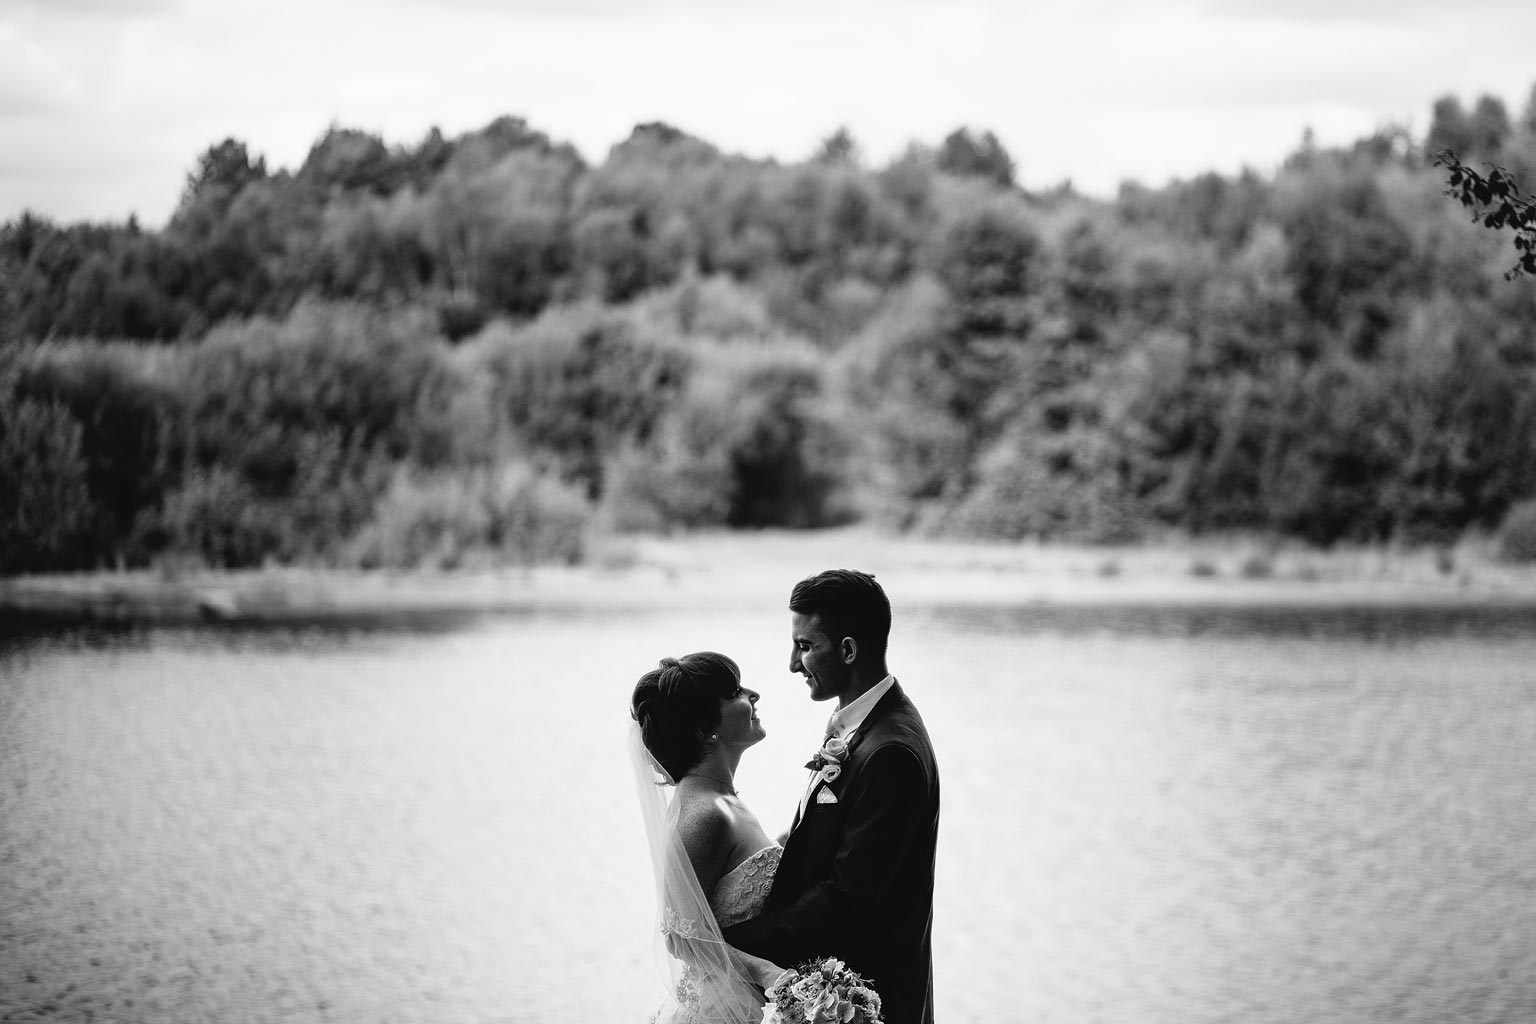 amazing picture of two lovers by a lake